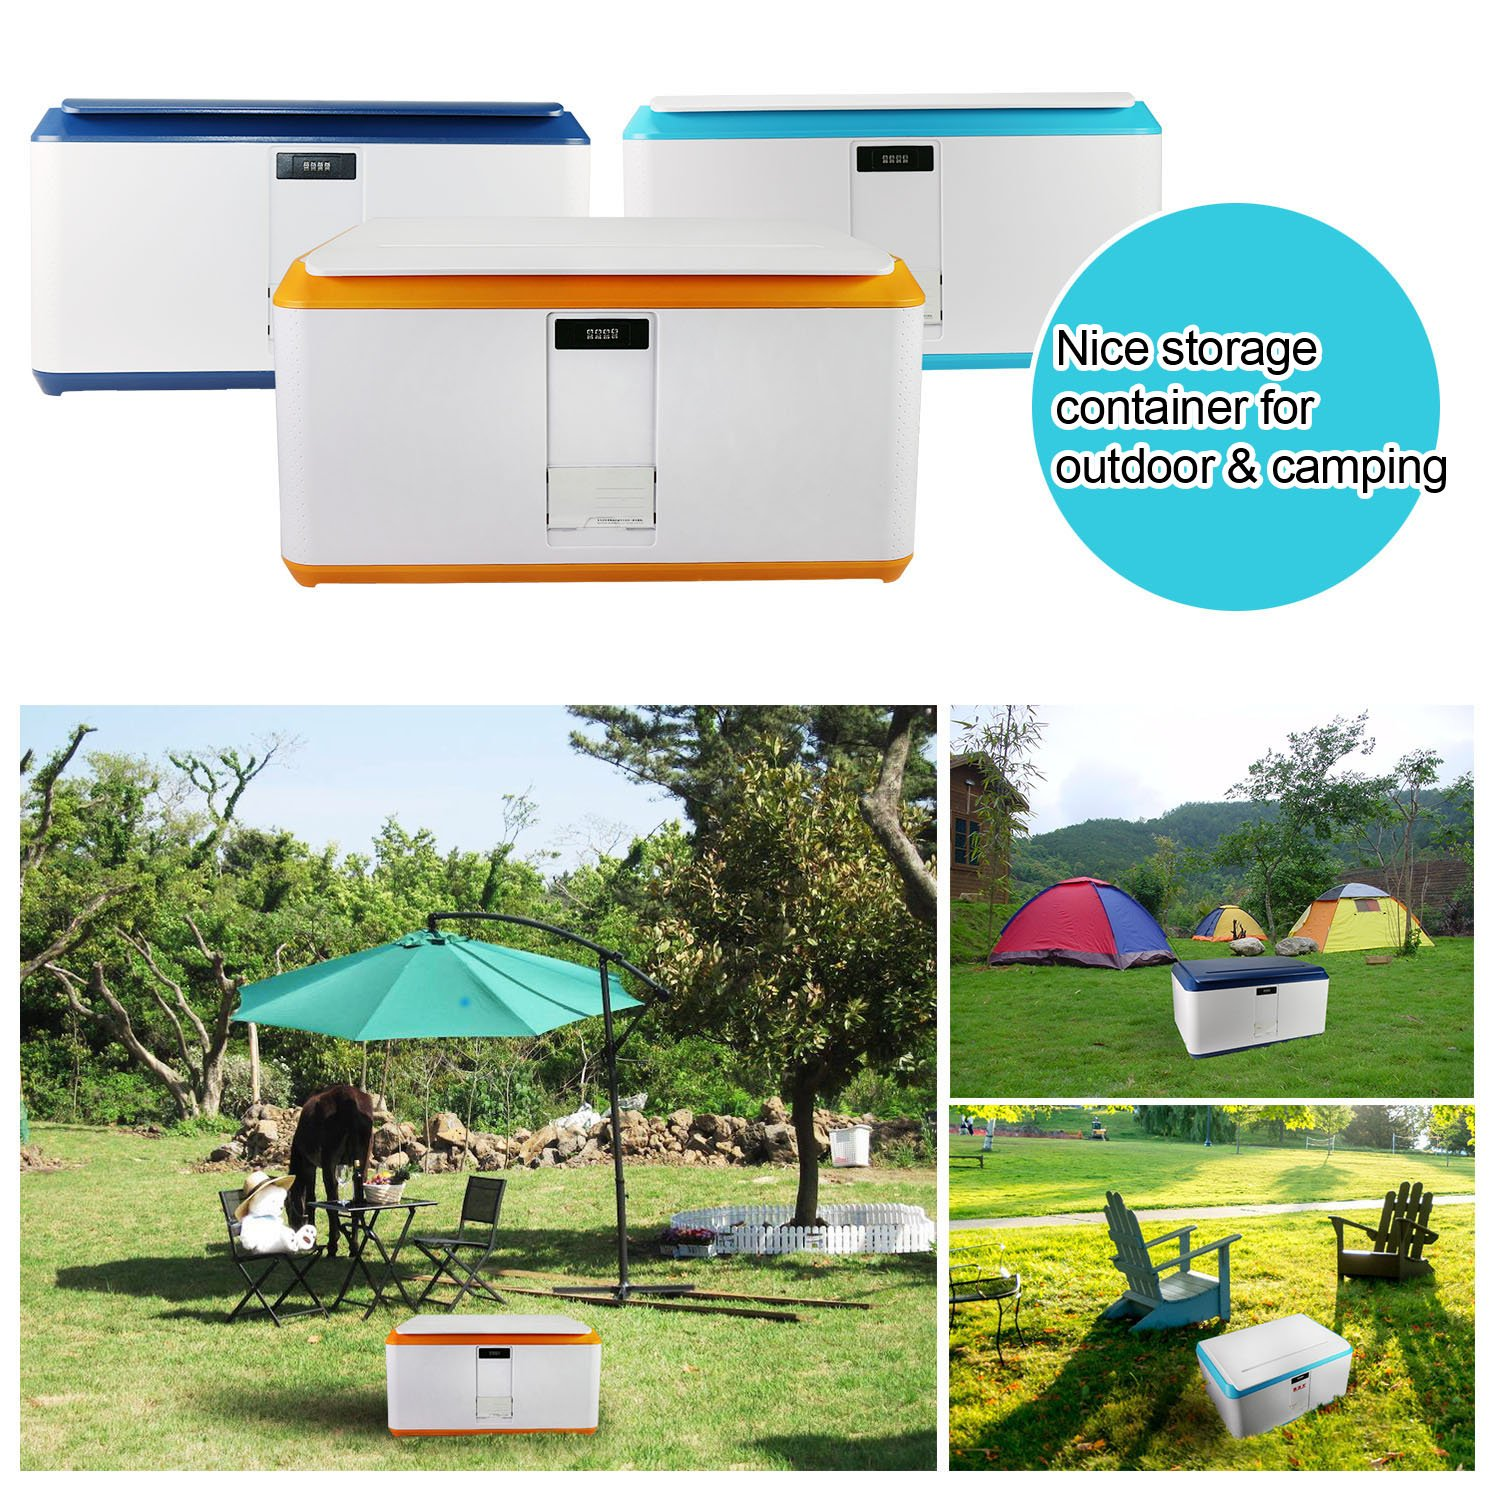 EVERTOP Extra Large Deck Box for Home, Office, Car, White with Code Lock (A-Green) by EVERTOP (Image #3)